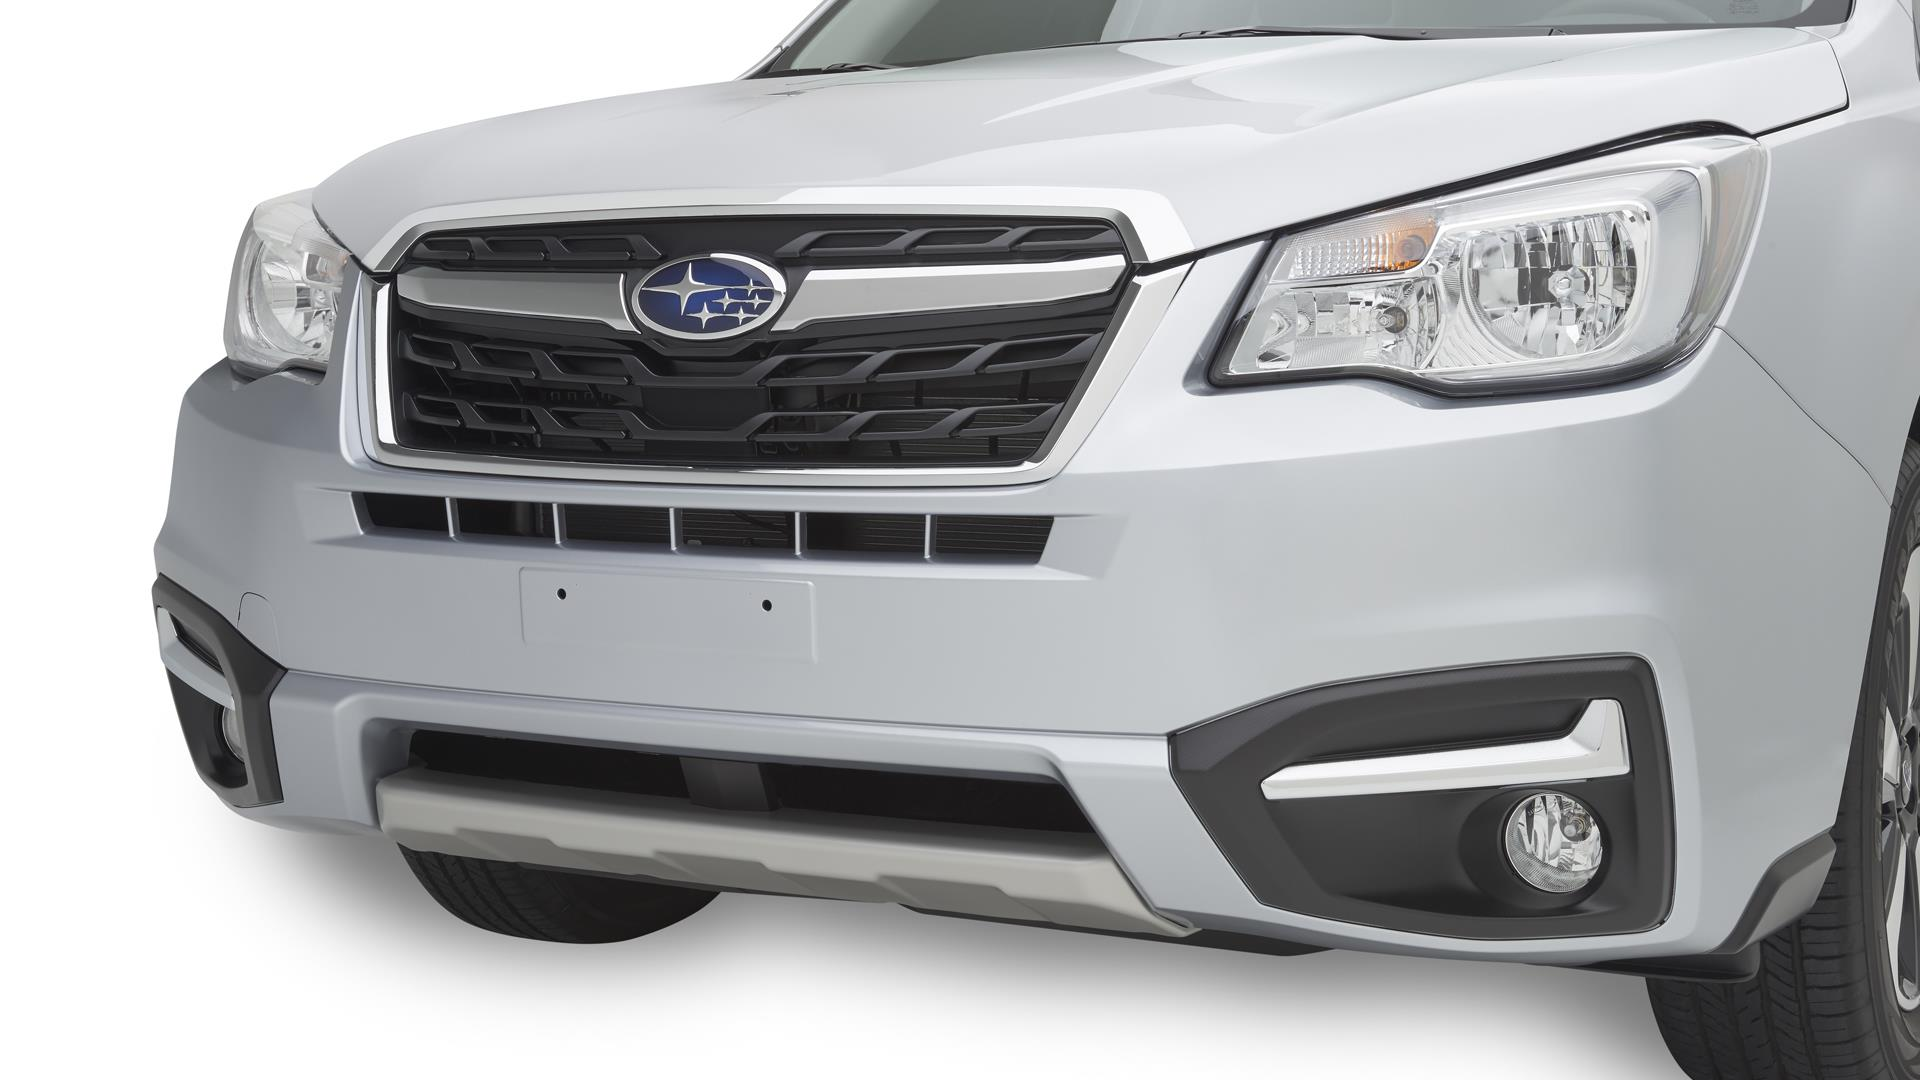 Shop Genuine Subaru Forester Accessories From Mike Shaw Subaru